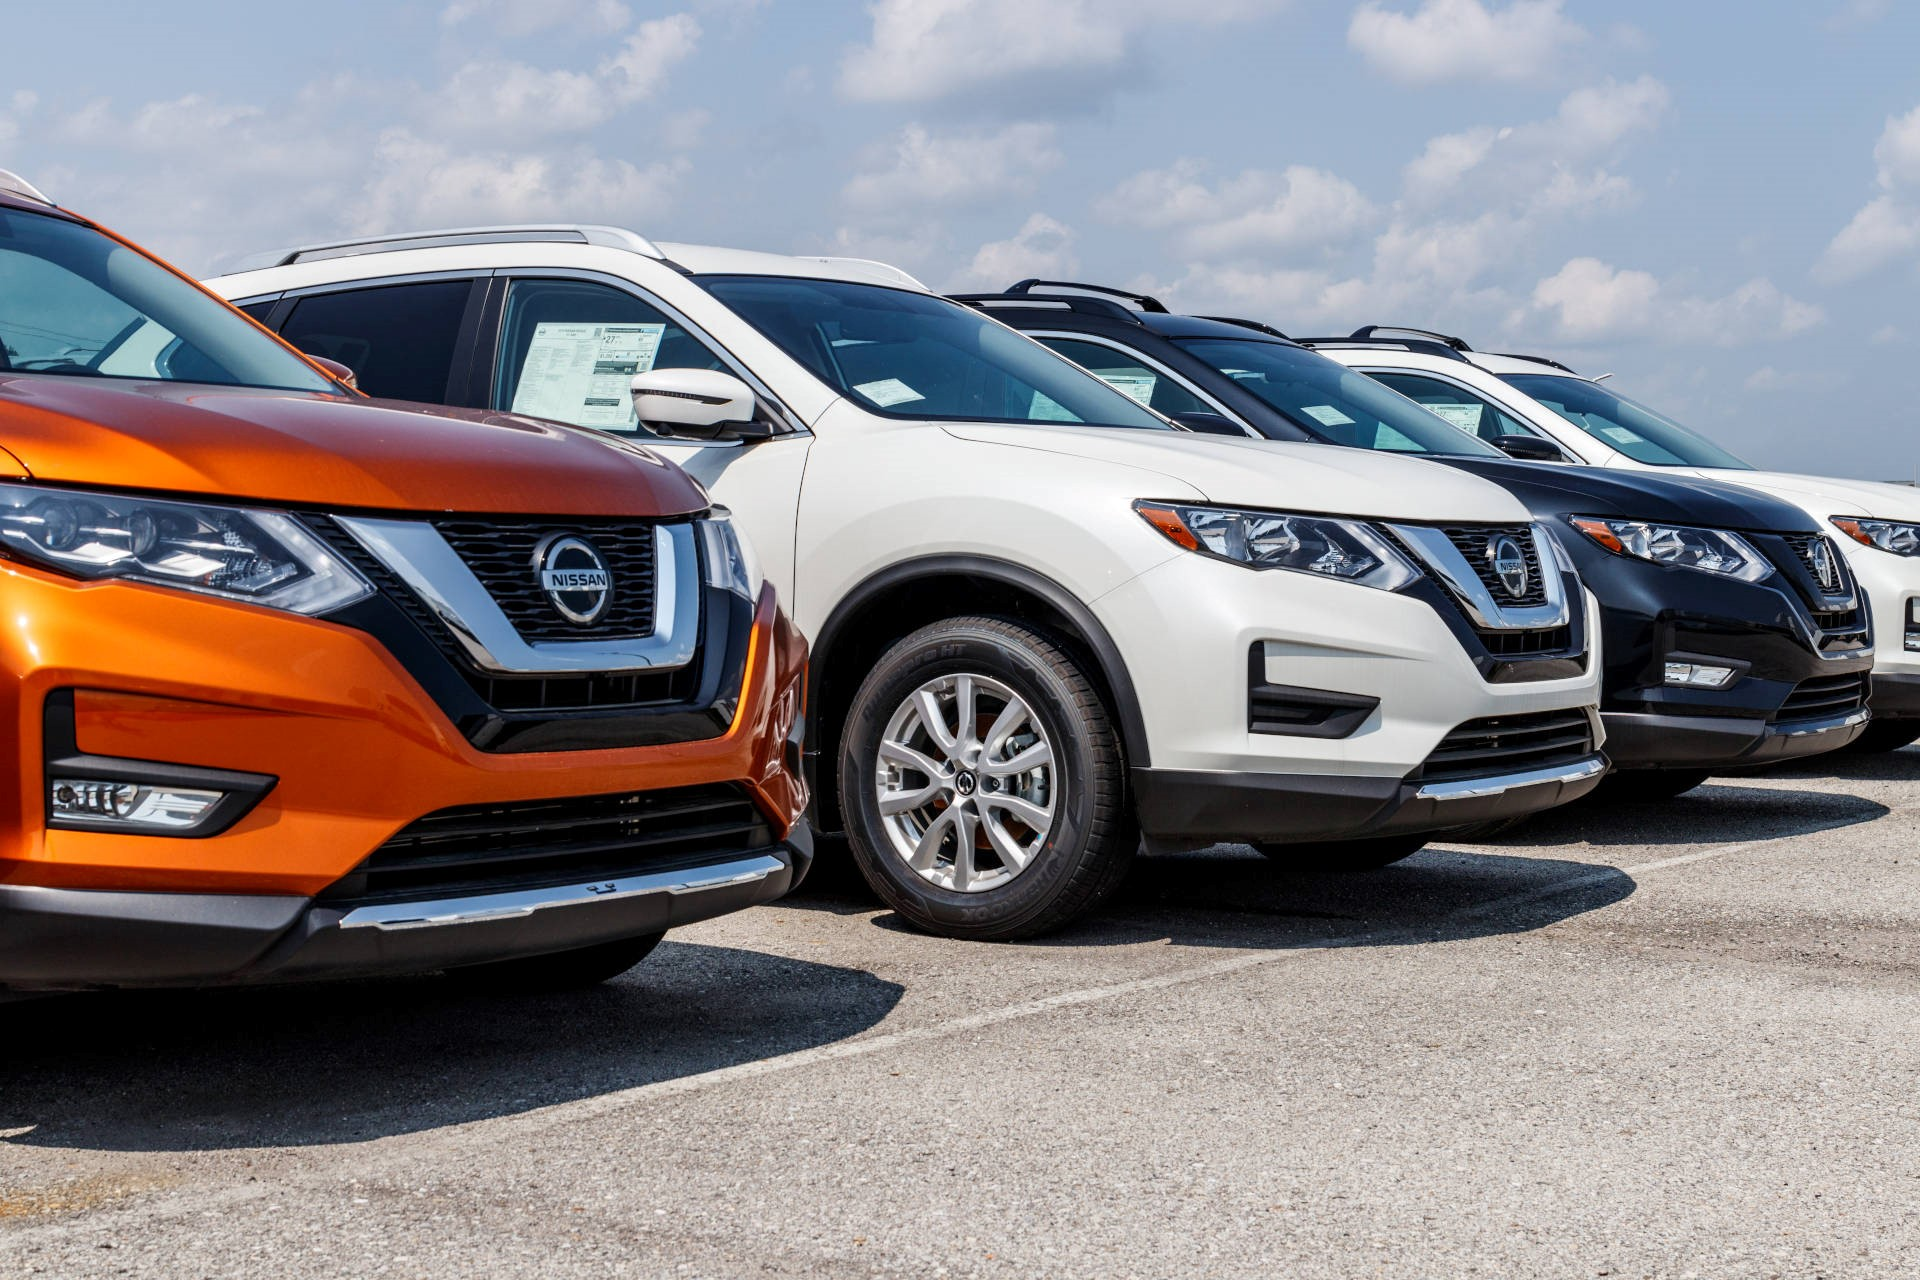 Line-up of Nissan used cars at a used car lot